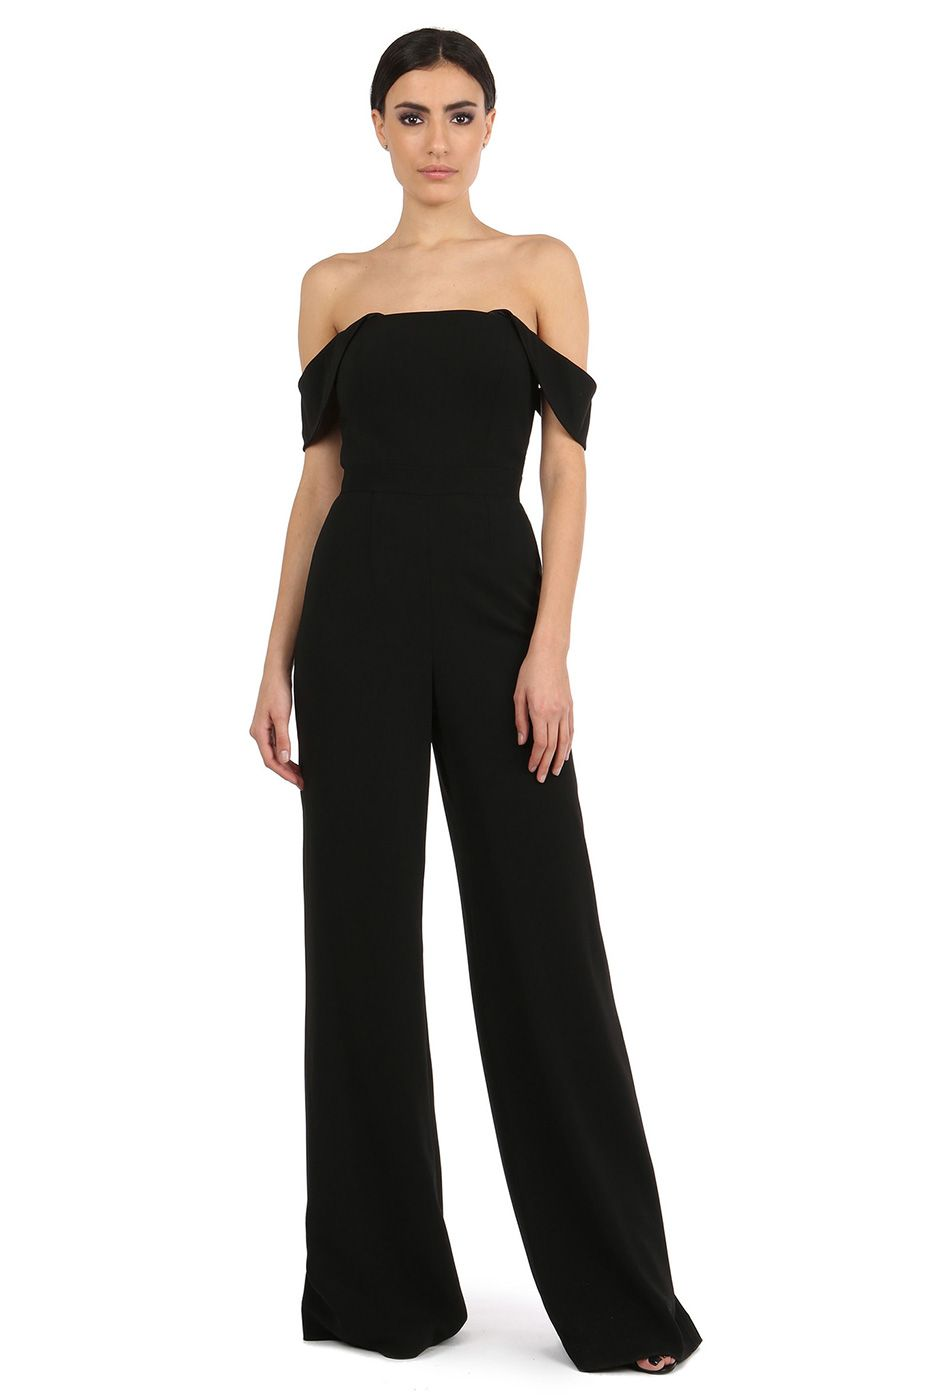 7748e231317 BRIN BLACK OFF-SHOULDER JUMPSUIT  540 THE BRIN JUMPSUIT IS THIS SEASON S  ALL-STAR. THE OFF-THE-SHOULDER CAPLET SLEEVES SCREAM ST…